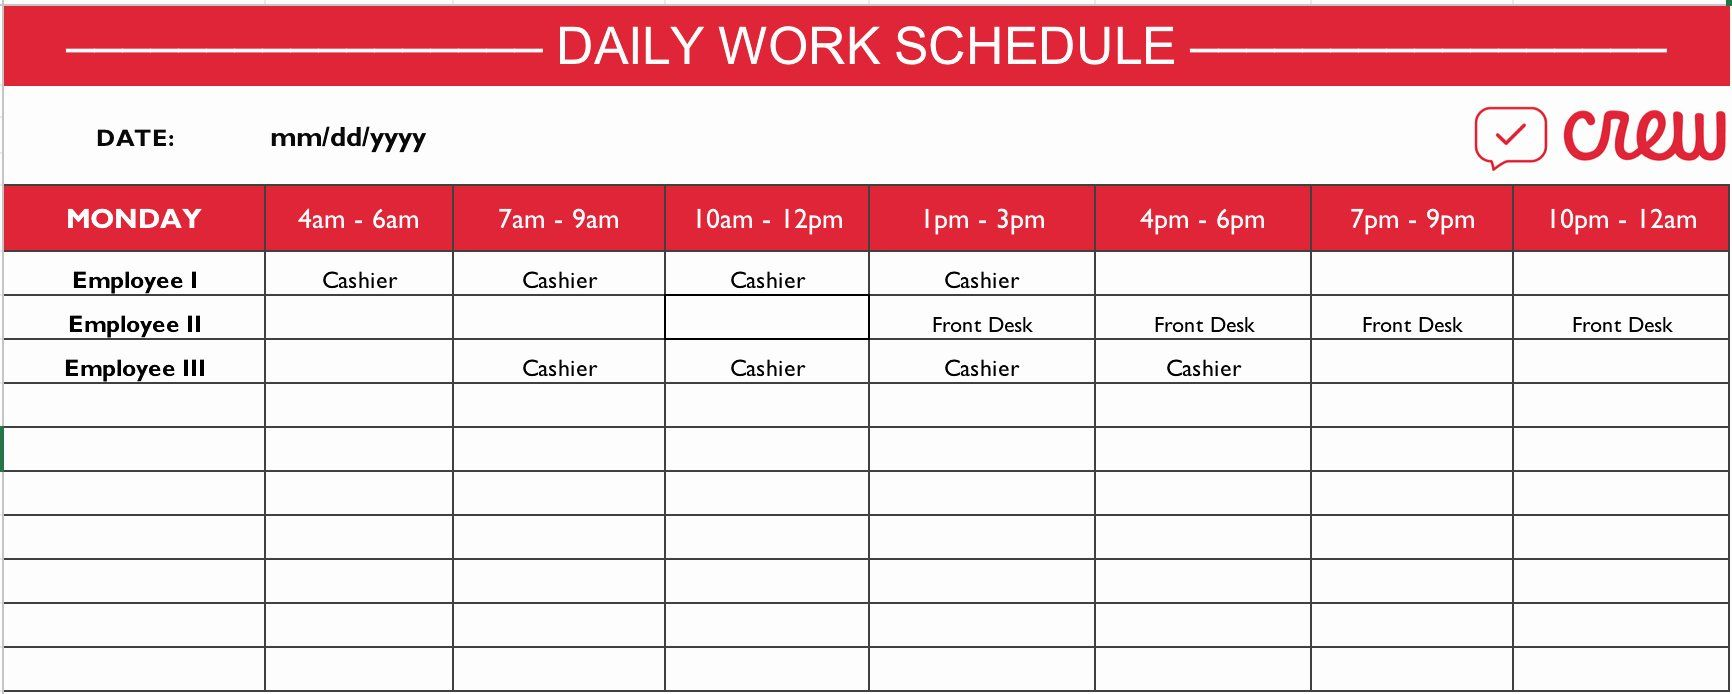 Employee Daily Work Schedule Template Best Of Employee Schedule Templates Example Of Spreadshee E Daily Work Planner Schedule Templates Daily Schedule Template